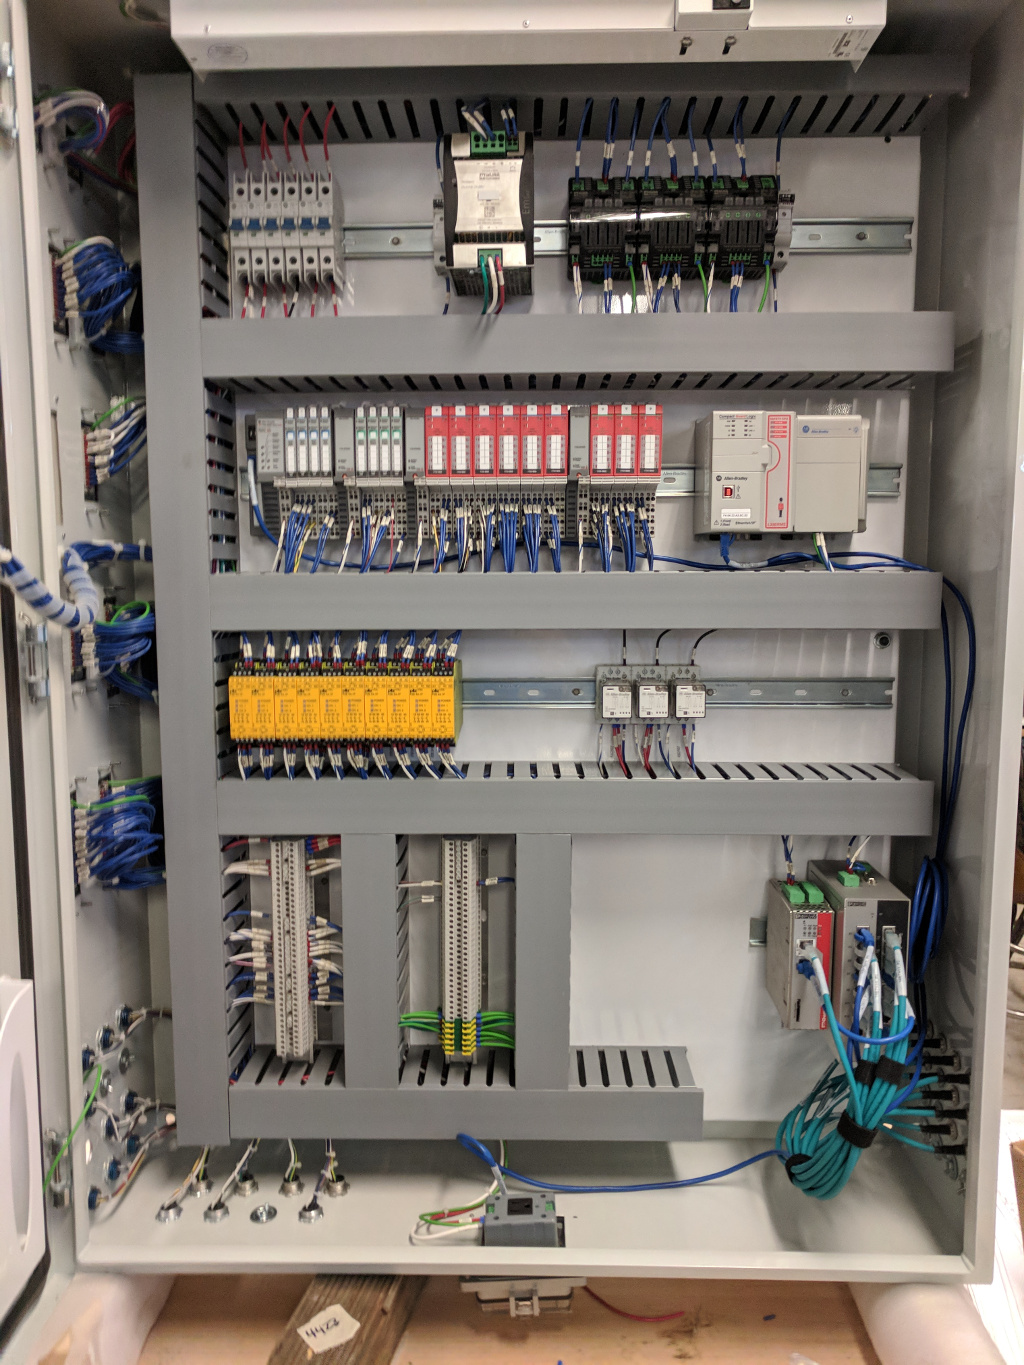 zech engineering - panel build & machine wiring  zech engineering